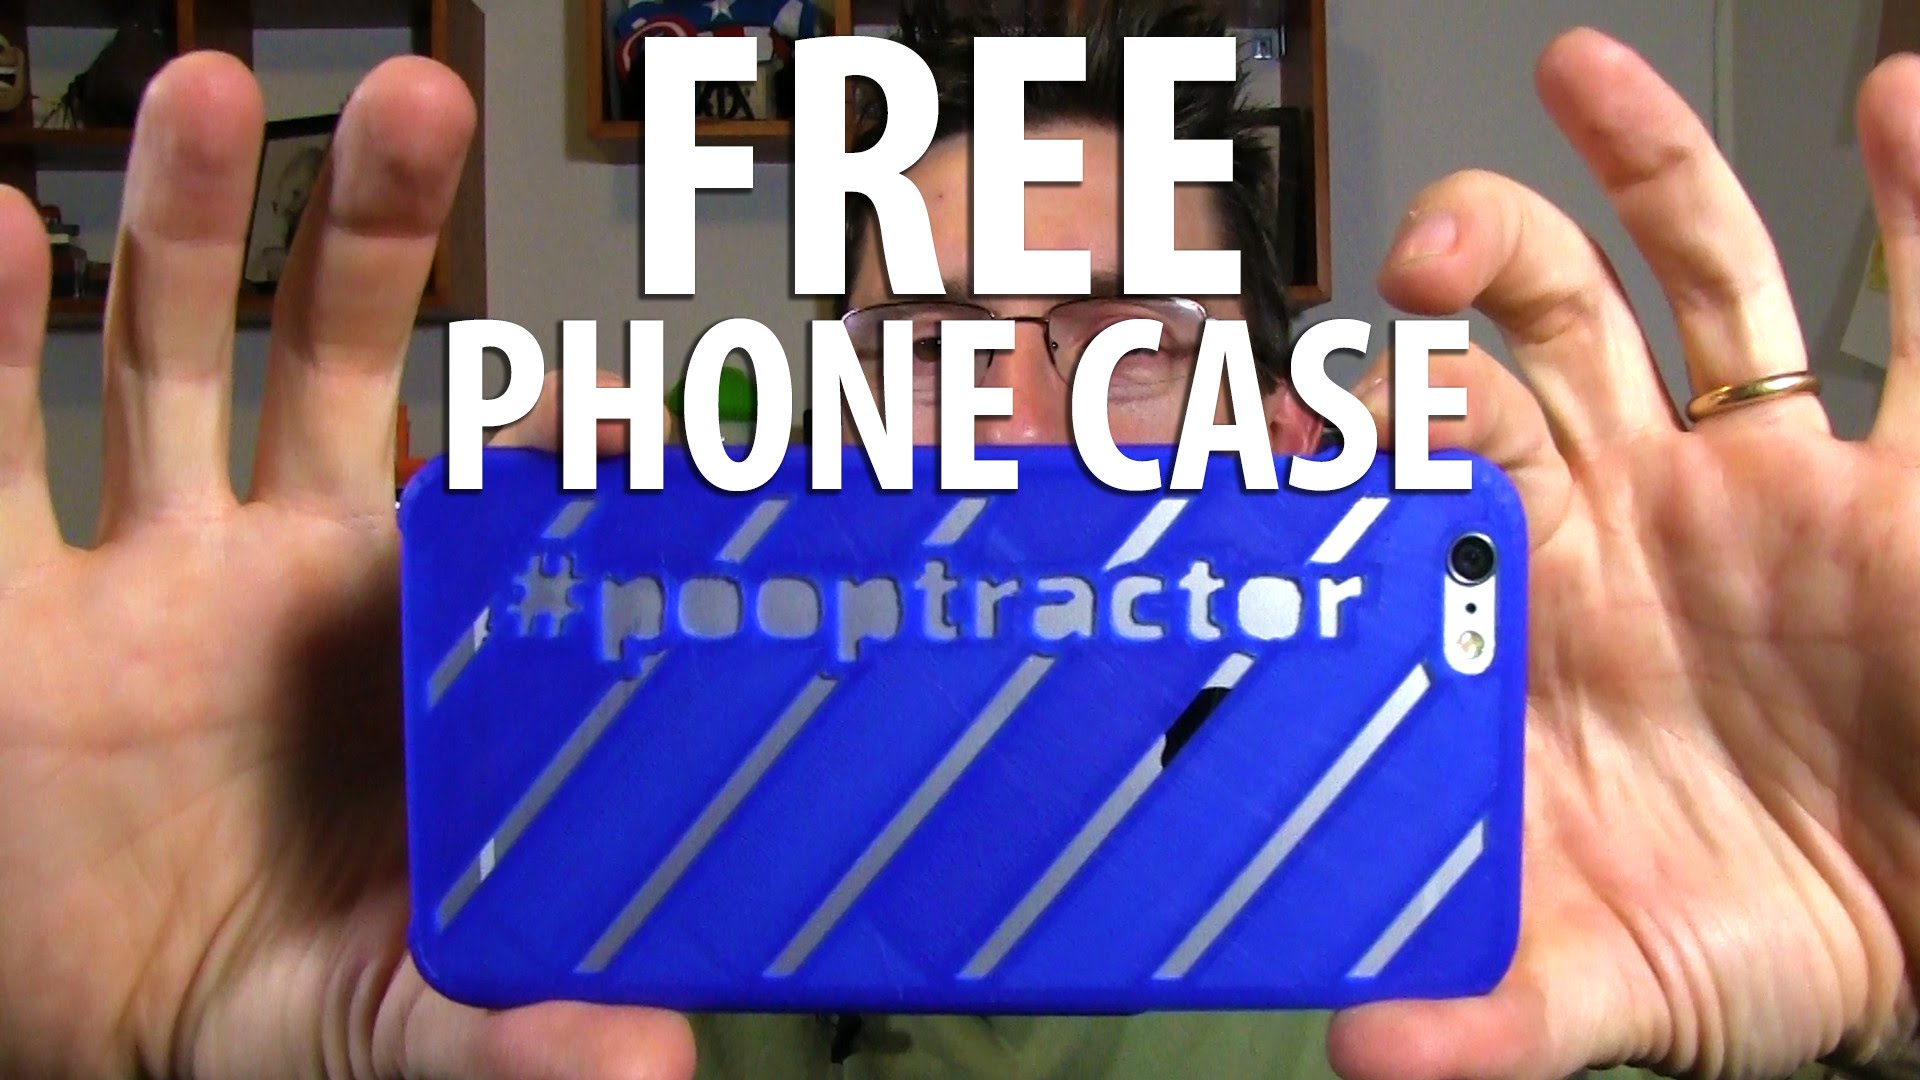 3D Print a Custom Free Phone Case